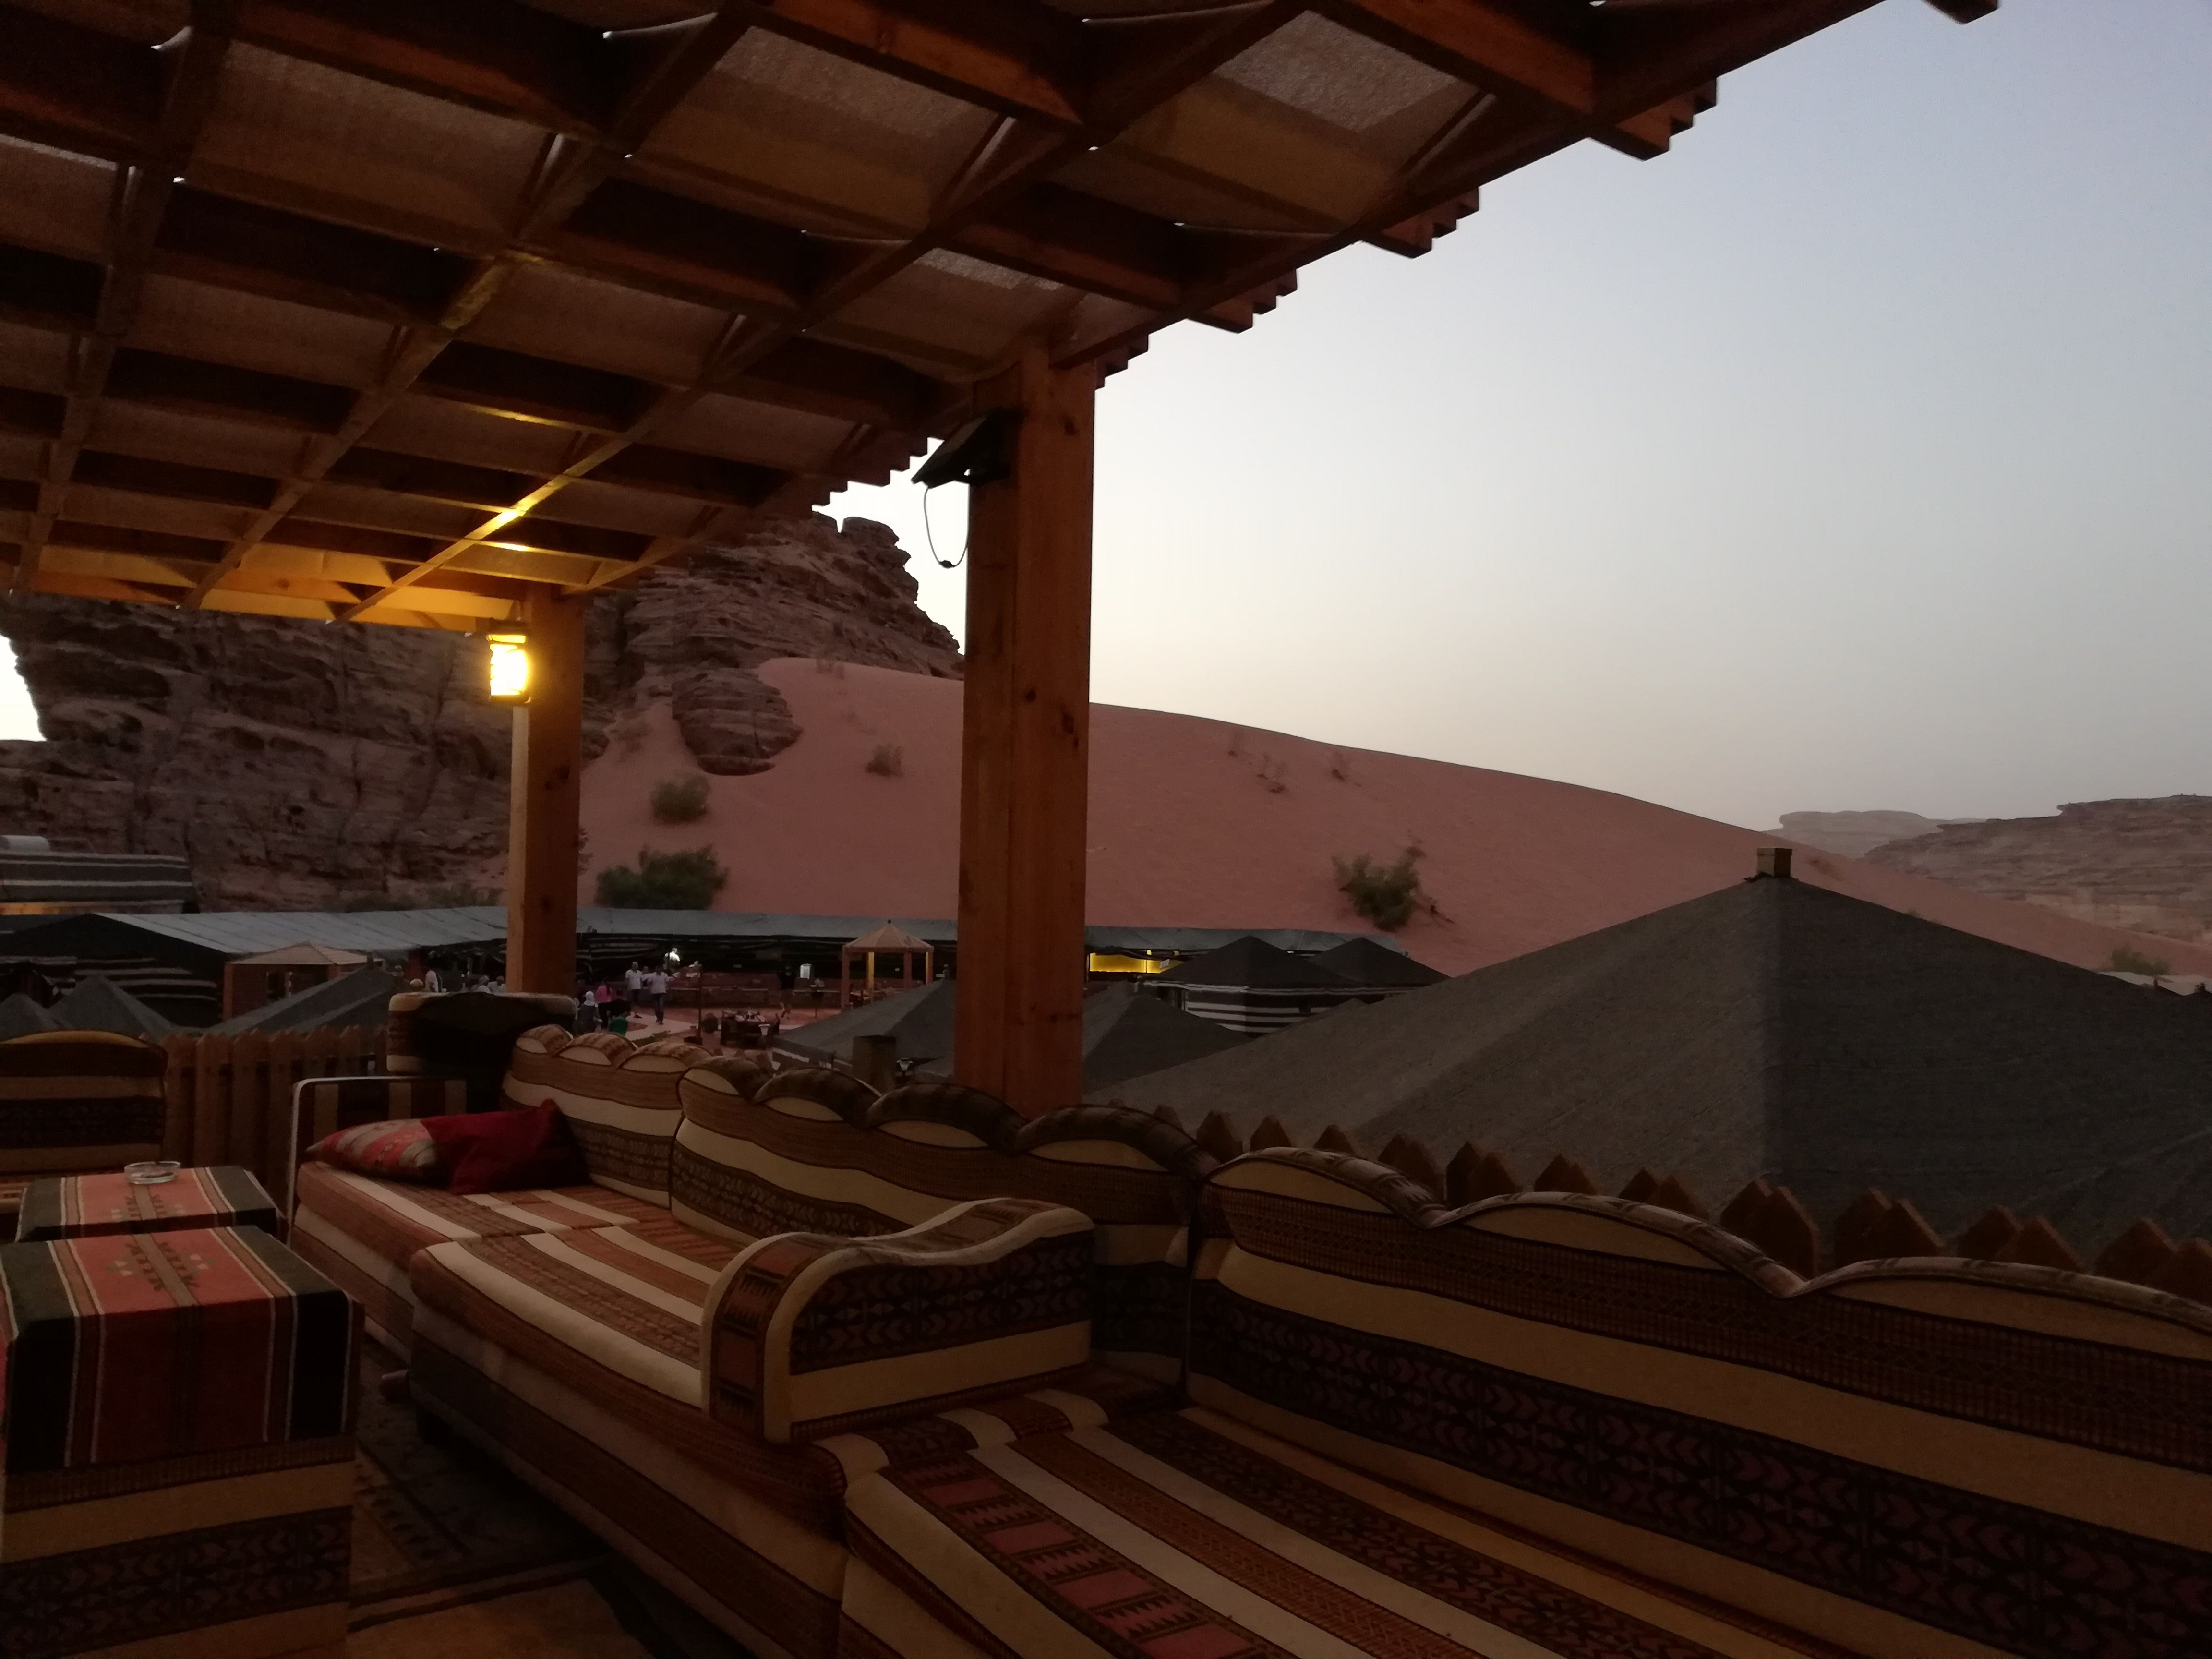 Bedouin camps accommodation in Wadi Rum, as good as hotels #wadirum